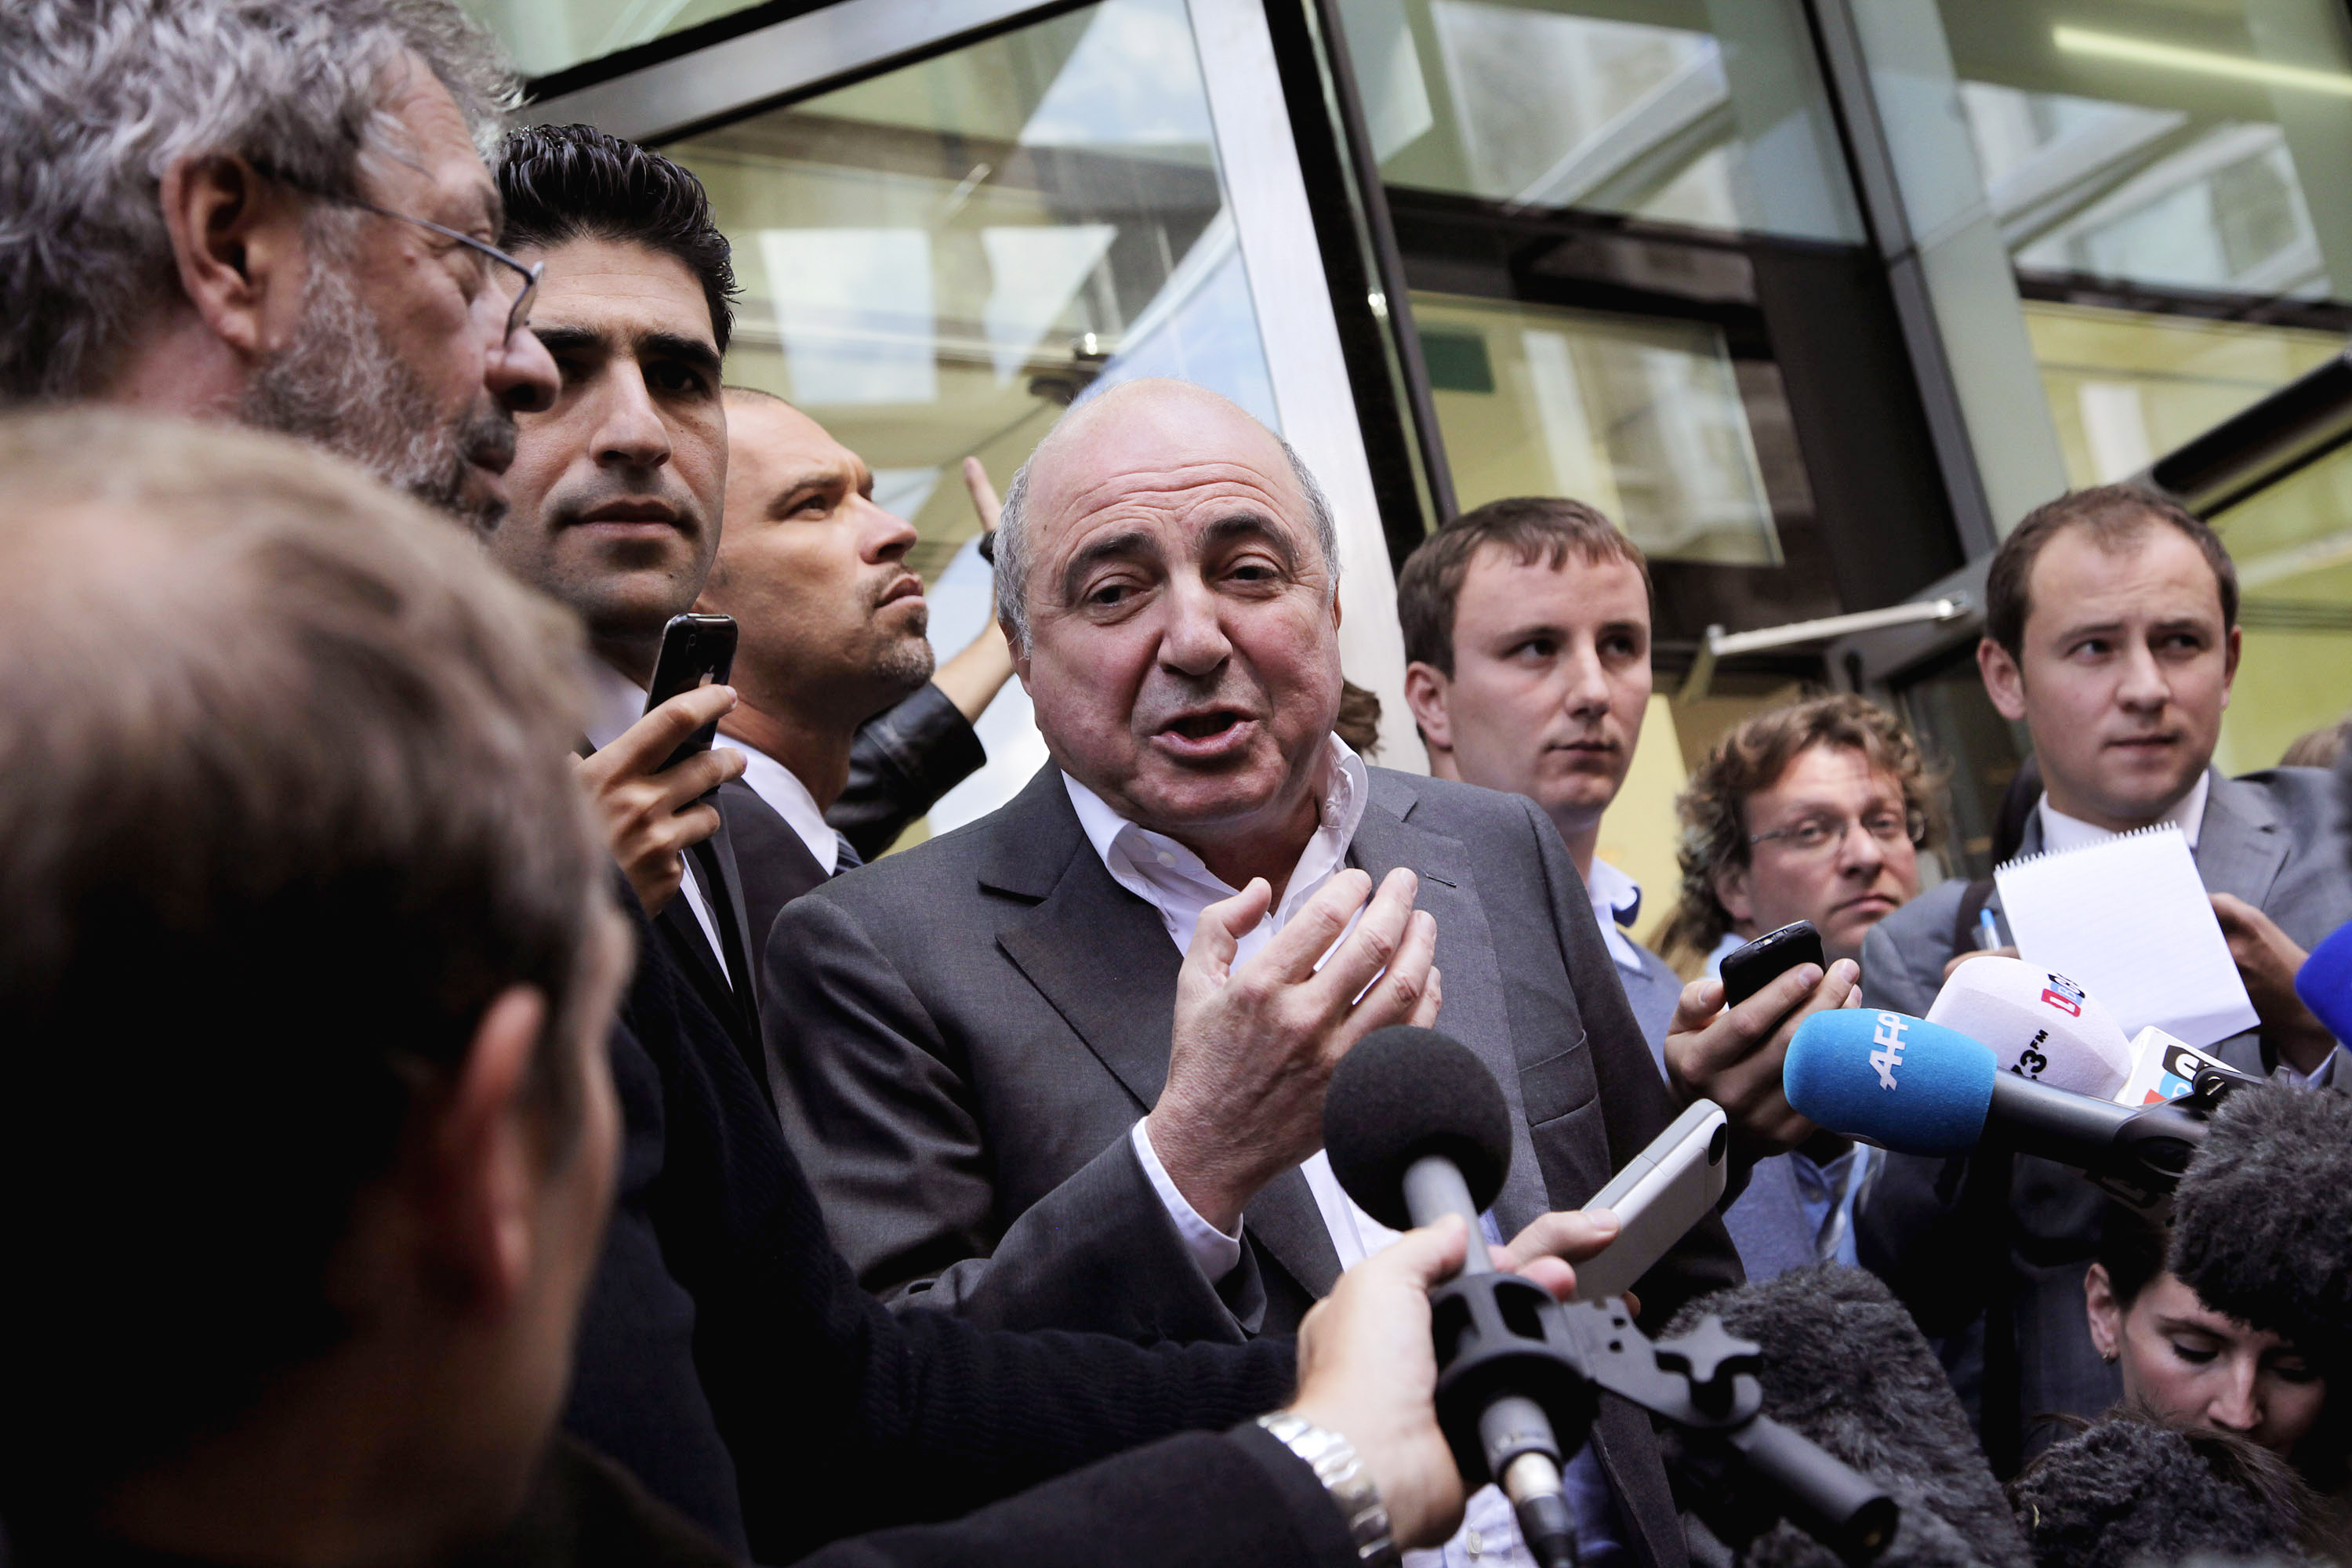 Boris Berezovsky addresses the media outside the Royal Courts of Justice after losing his lawsuit against Chelsea FC owner Roman Abramovich on August 31, 2012 in London, England. Berezovsky sued Abramovich for billions of pounds, claiming he was  intimidated  into selling shares in oil group Sibneft at below market value.